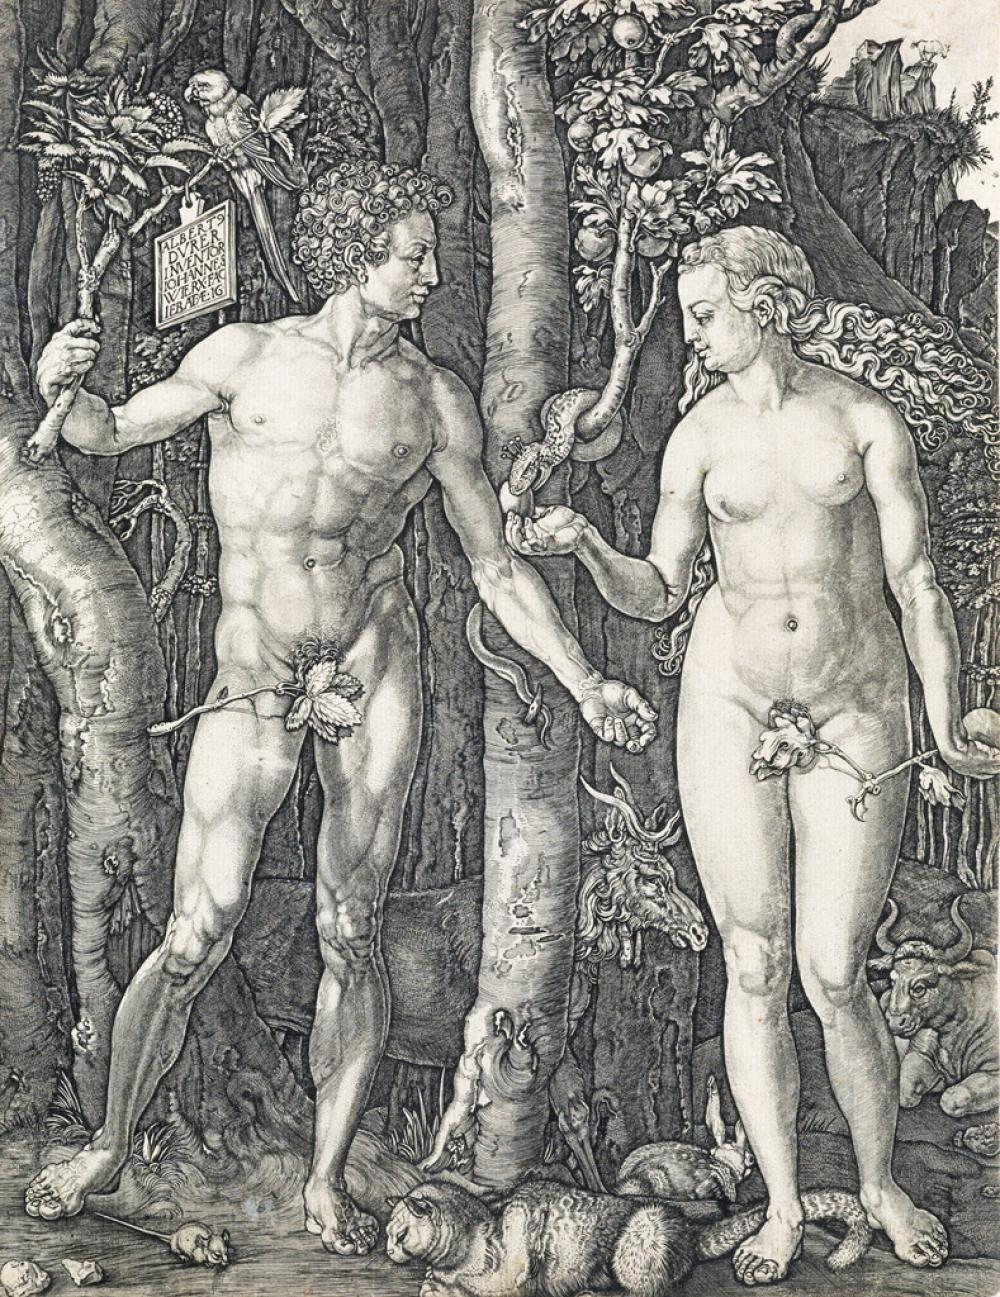 JOHANNES WIERICX (after Dürer) Adam and Eve